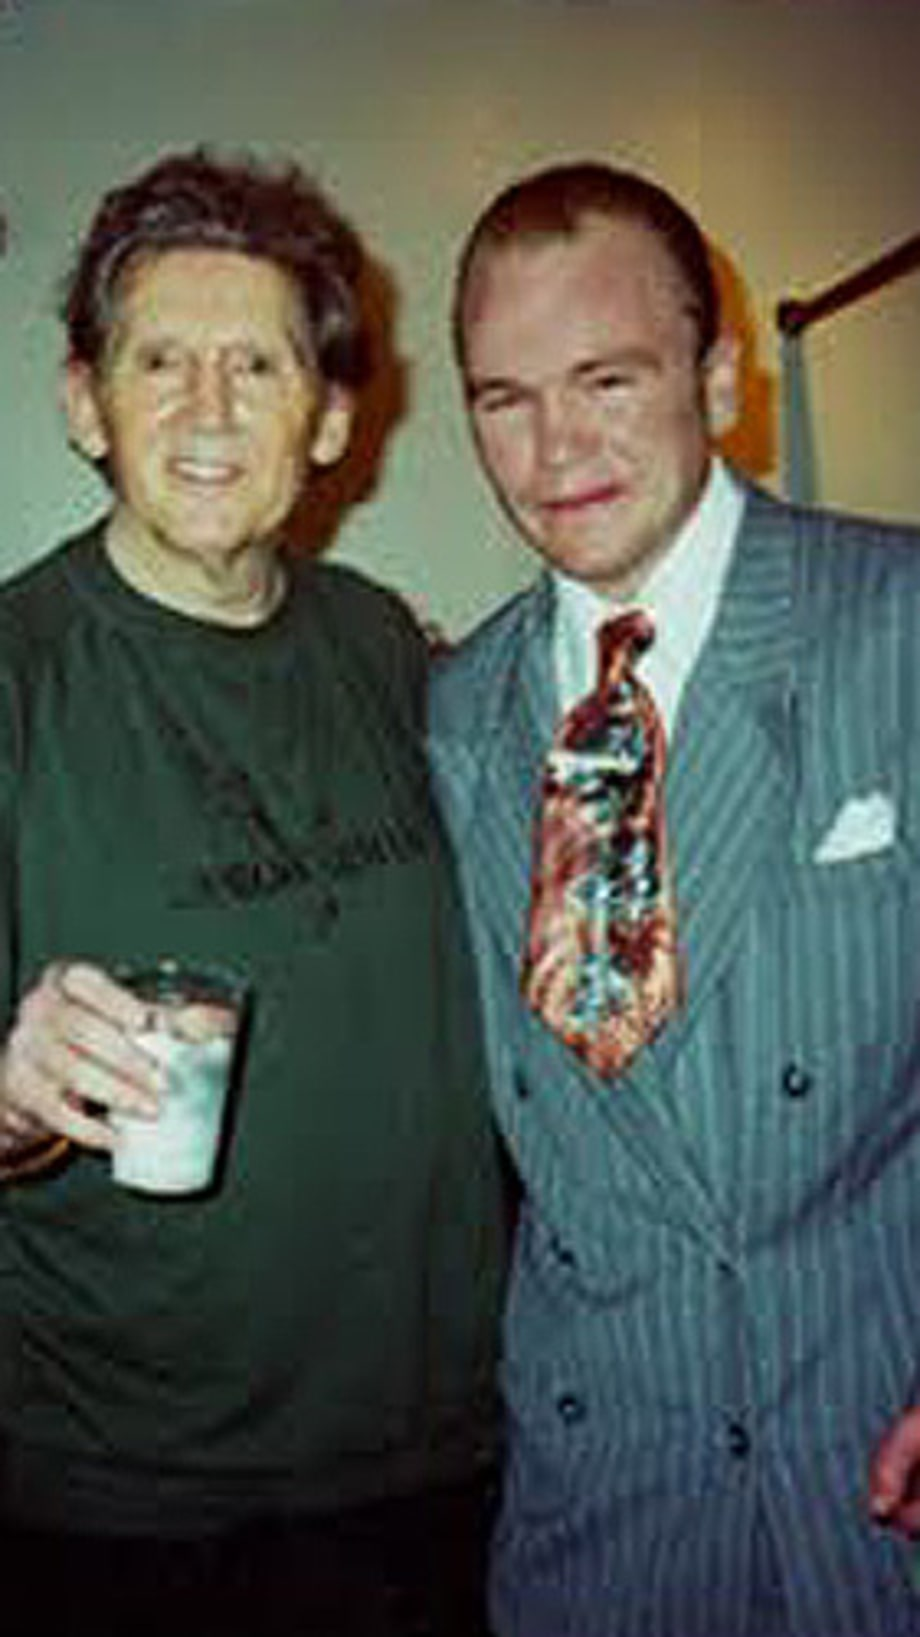 RCR and Jerry Lee Lewis